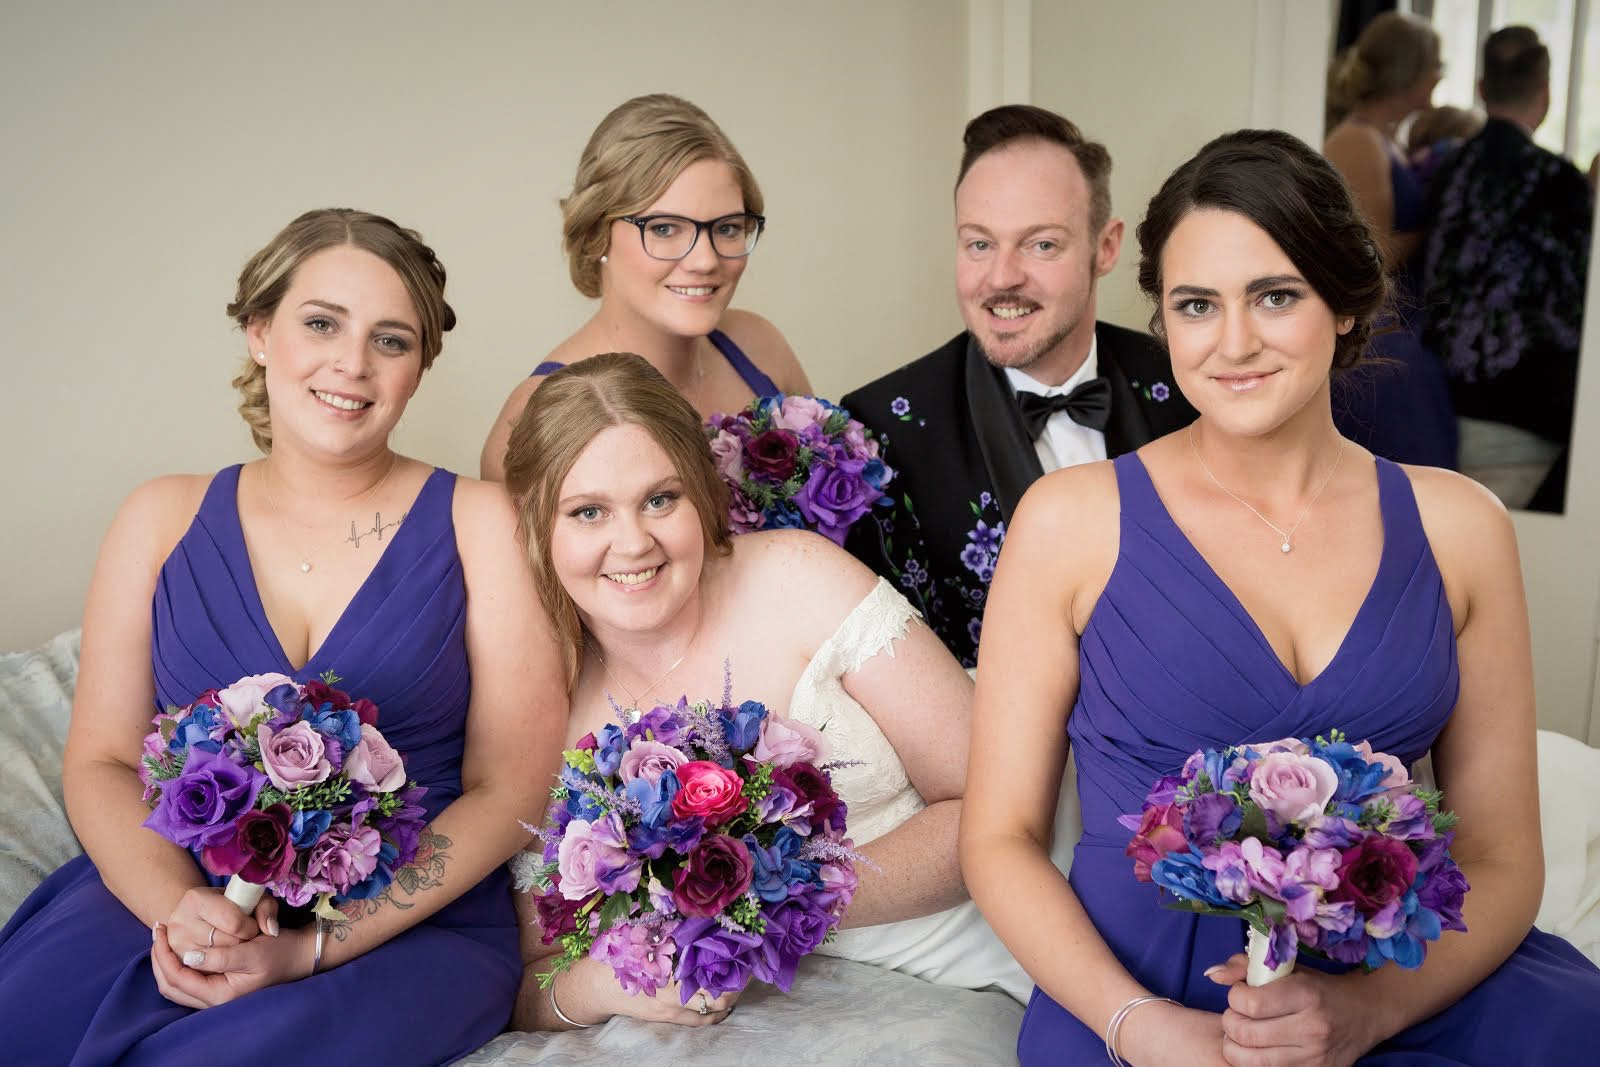 Bridal Party Makeup & Hair Styling